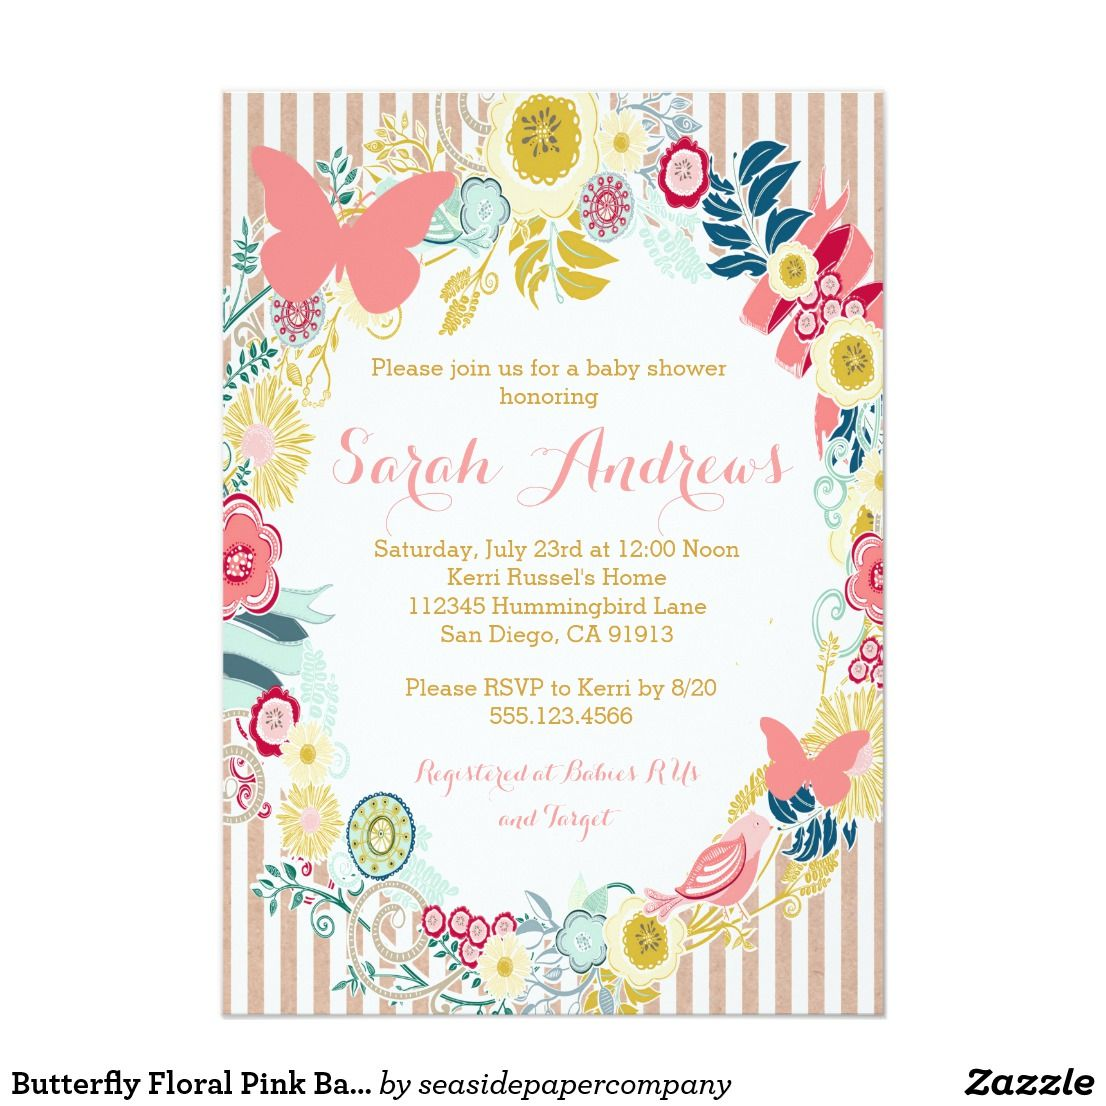 Butterfly Floral Pink Baby Shower Girl invitation | Pinterest ...